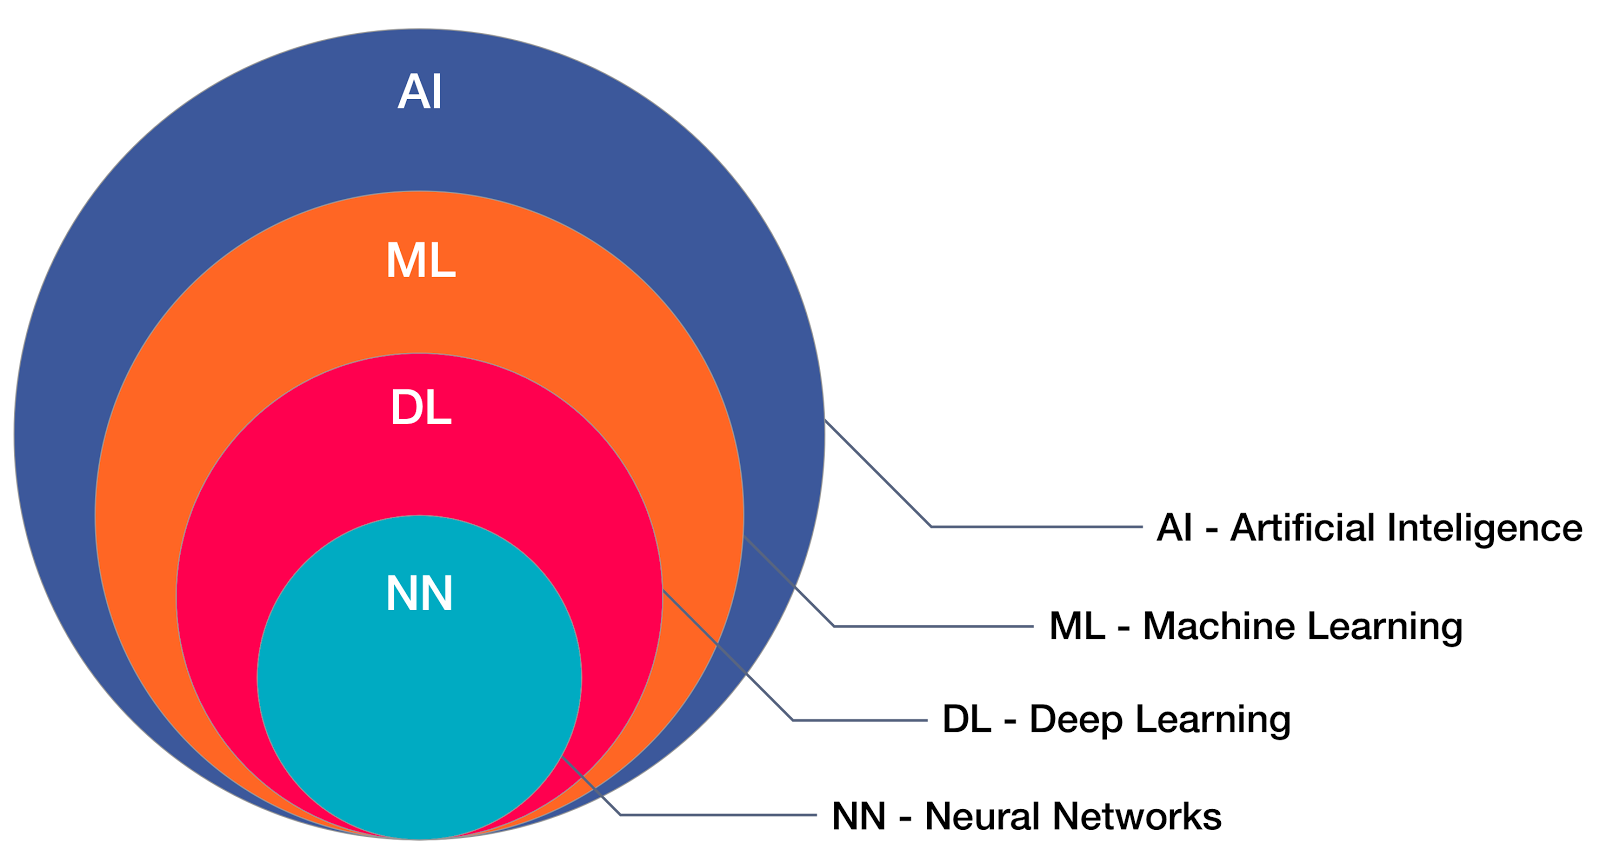 Artificial intelligence - Machine Learning - Deep Learning - Neural Networks